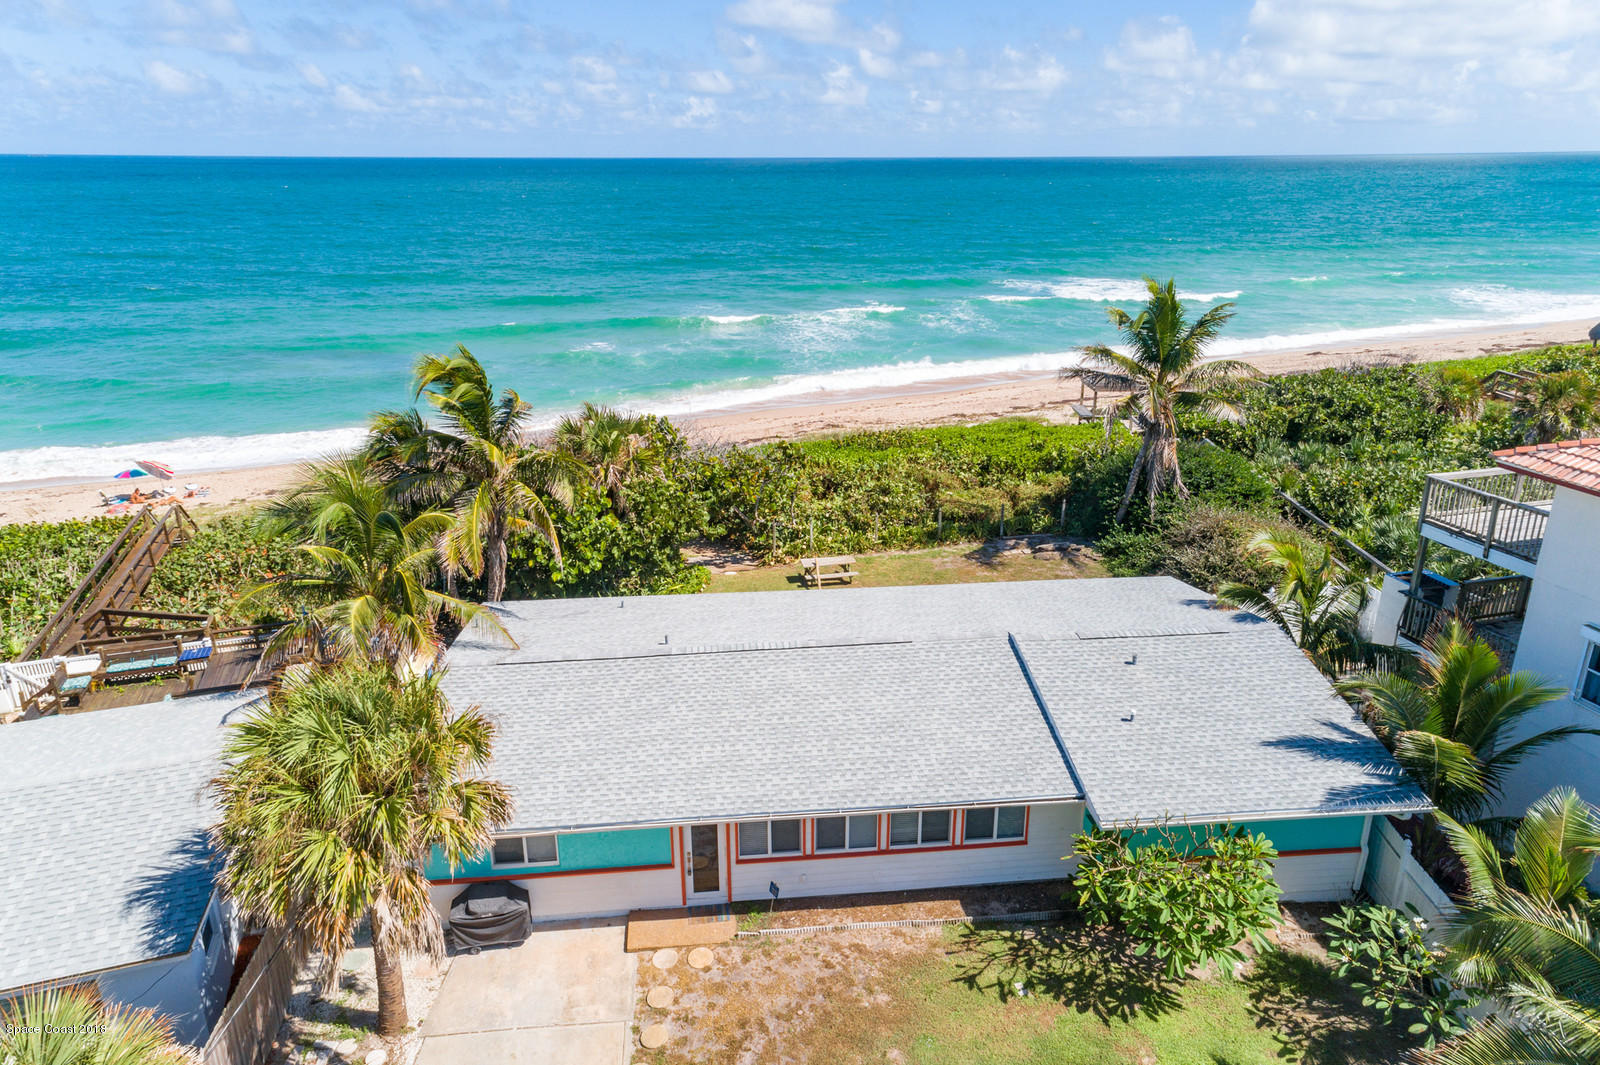 Single Family Home for Sale at 9075 S Highway A1a 9075 S Highway A1a Melbourne Beach, Florida 32951 United States